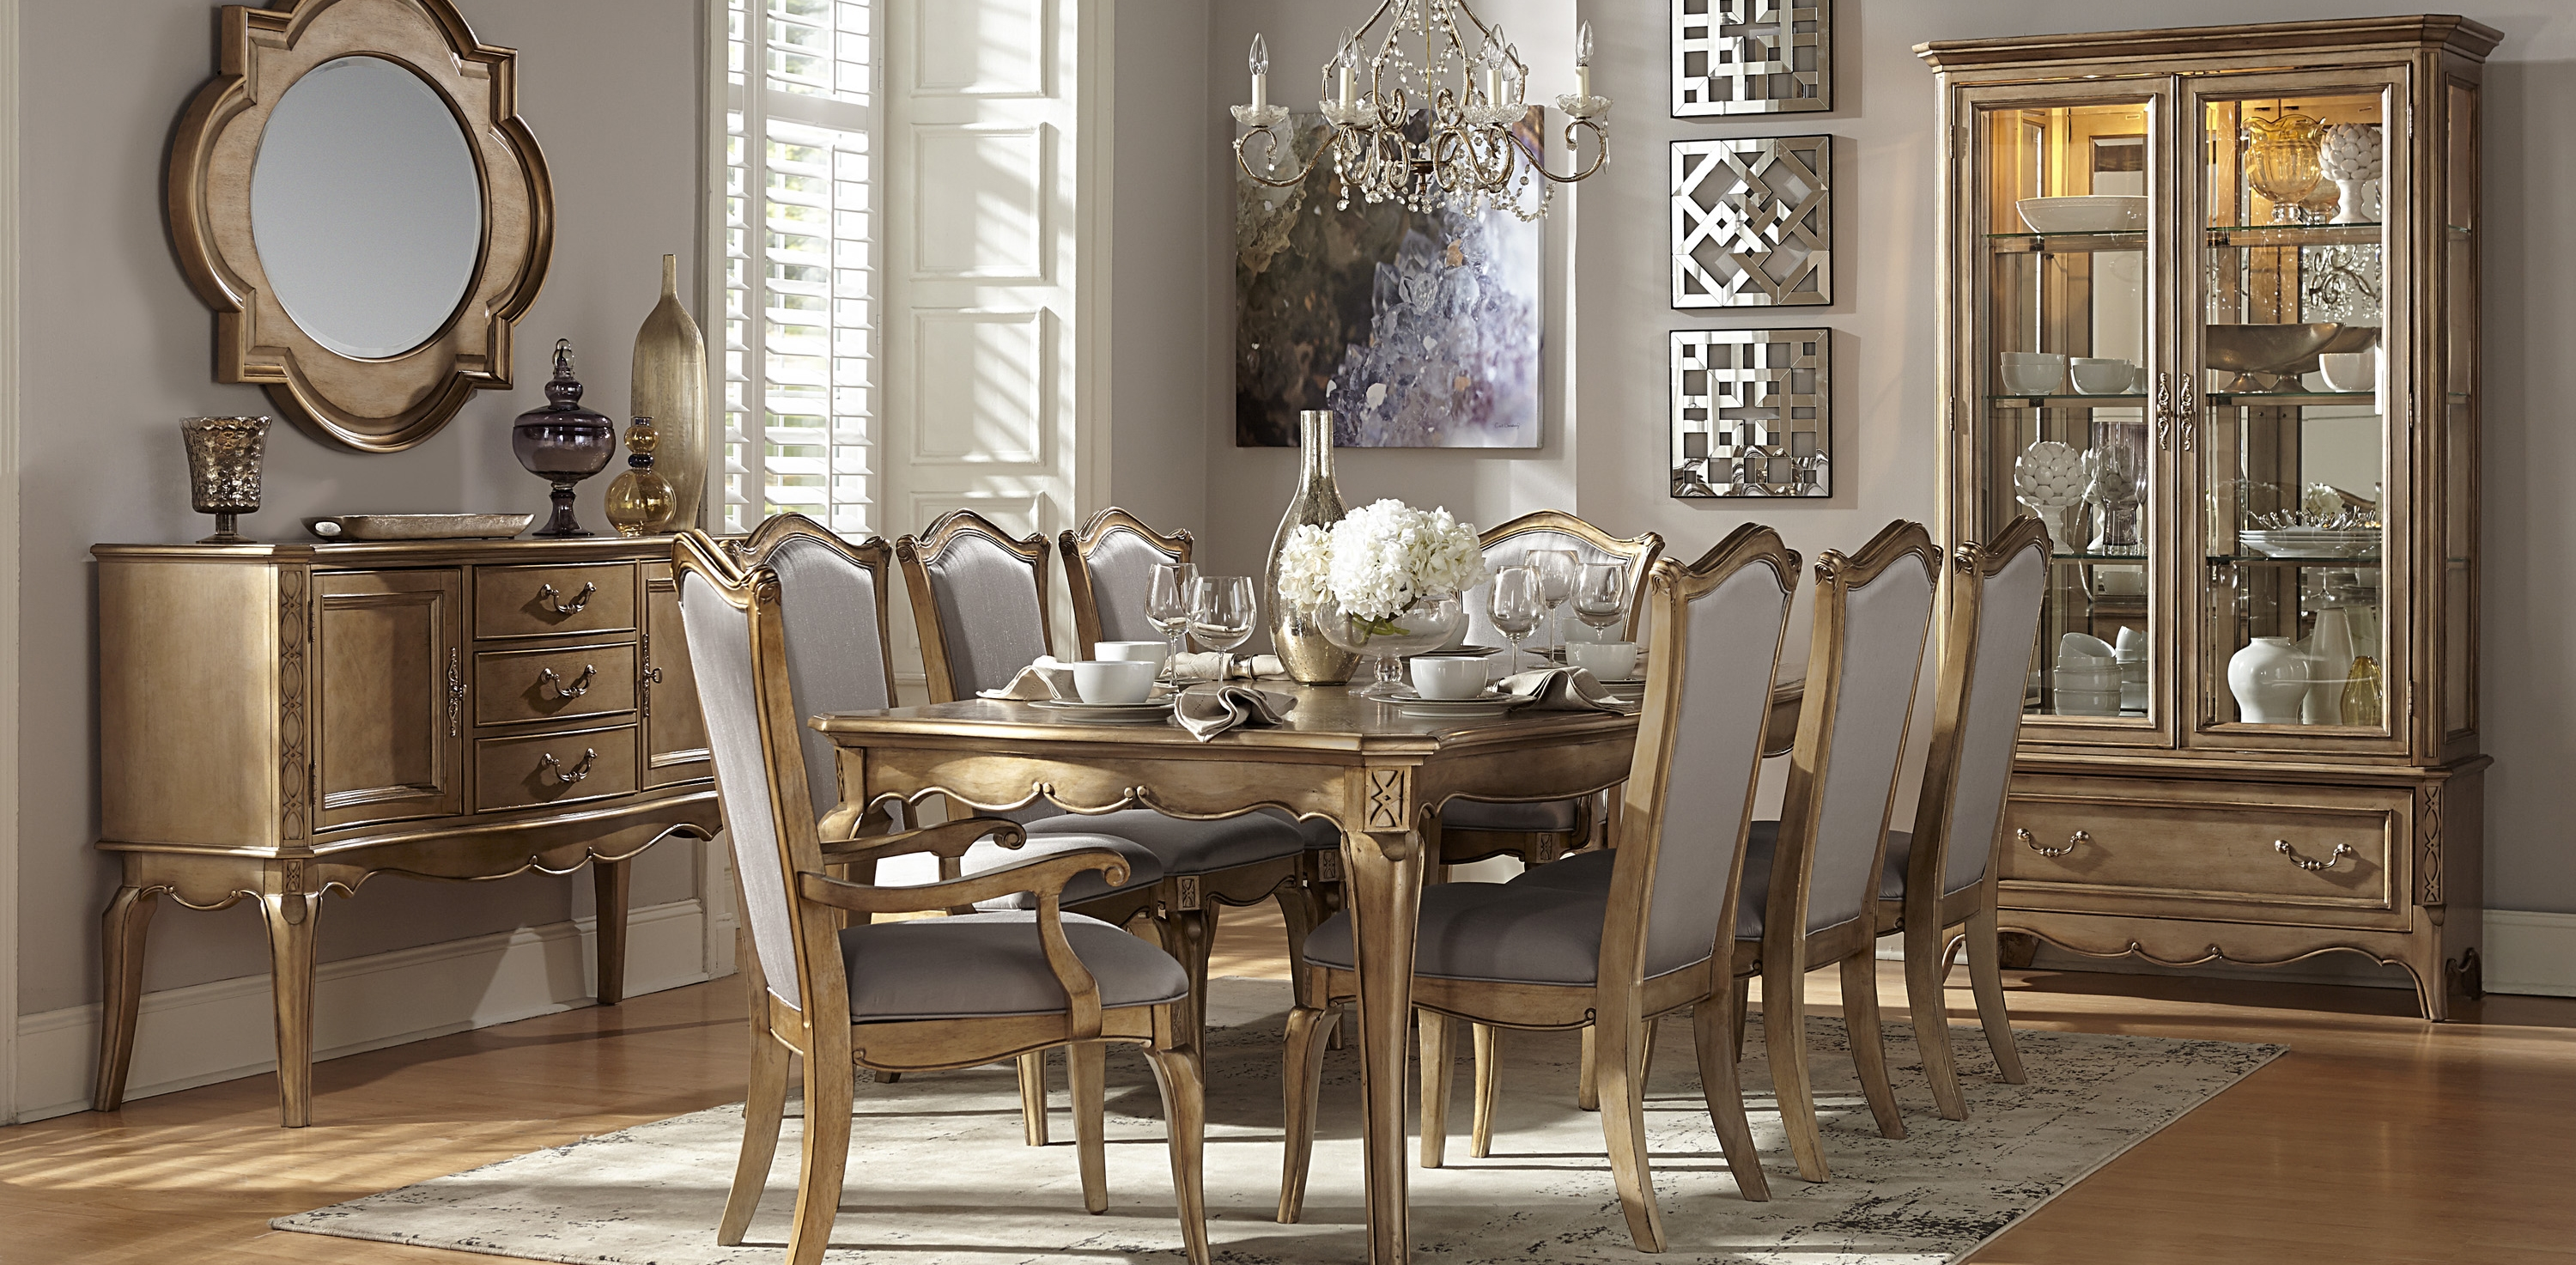 photo of a luxurious dining room